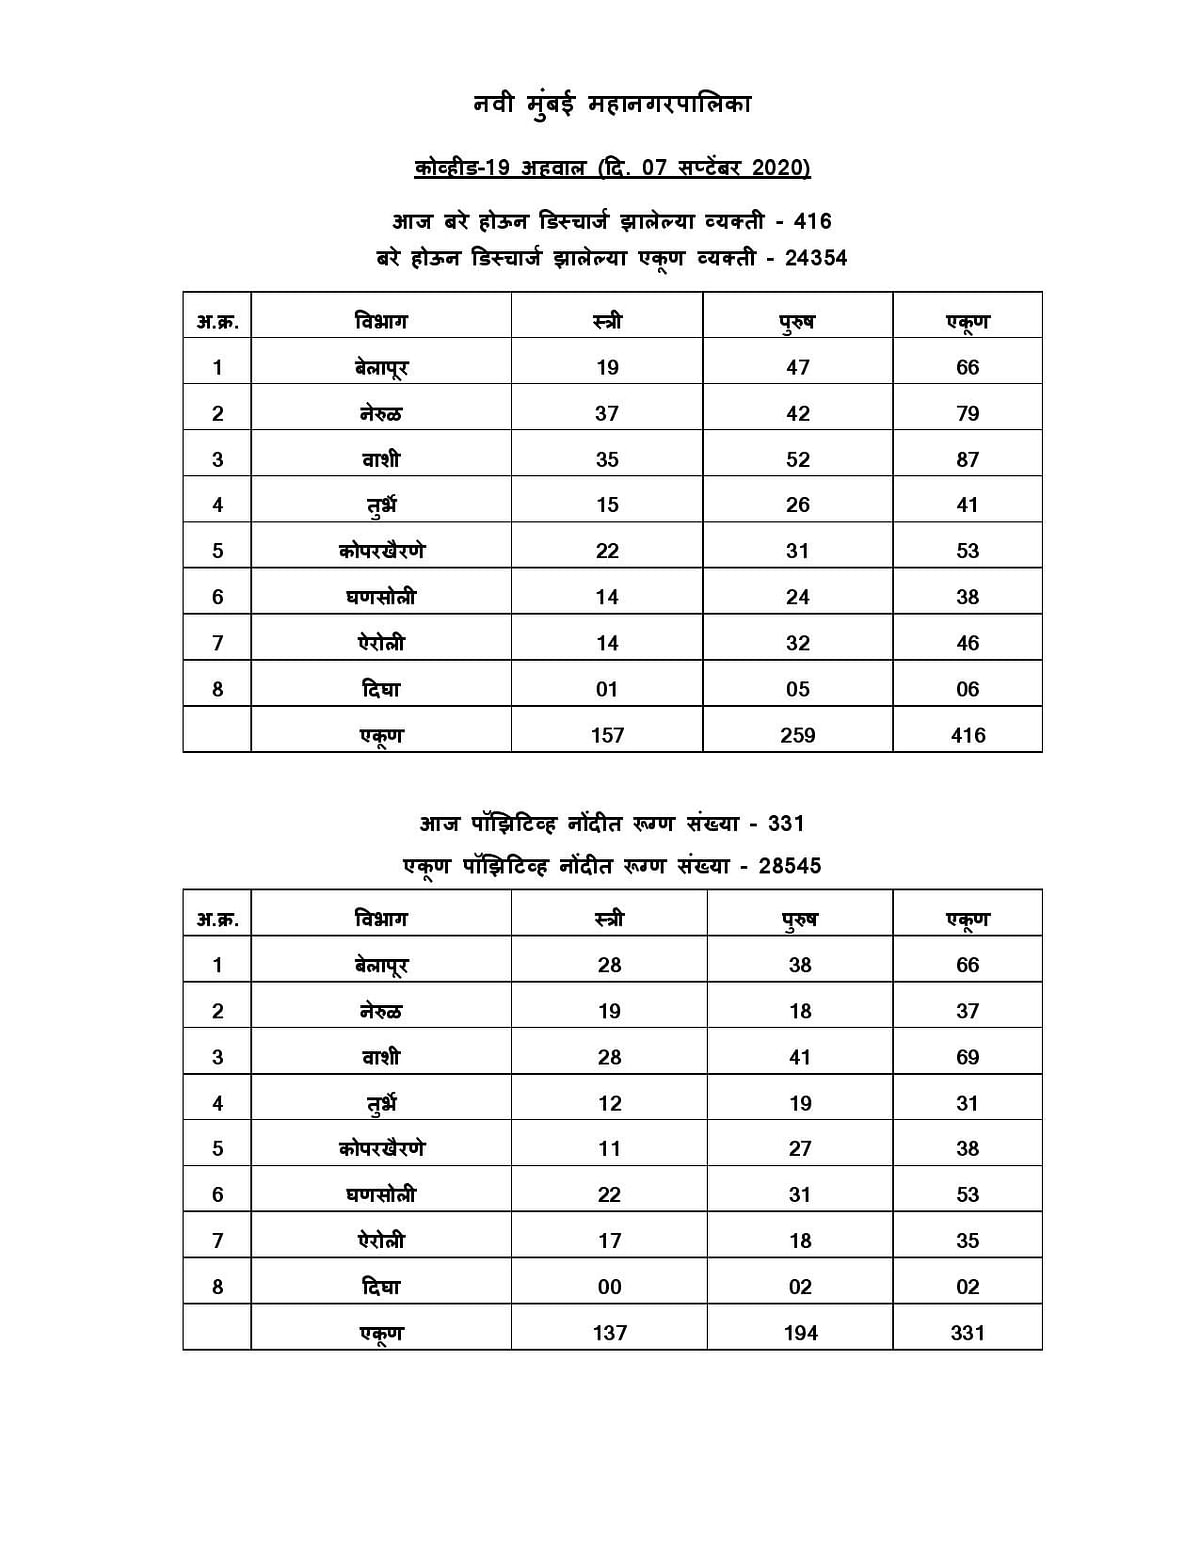 Coronavirus in Navi Mumbai: Area-wise list of cases in Vashi, Belapur, Airoli, etc as of Sep 7 as released by NMMC